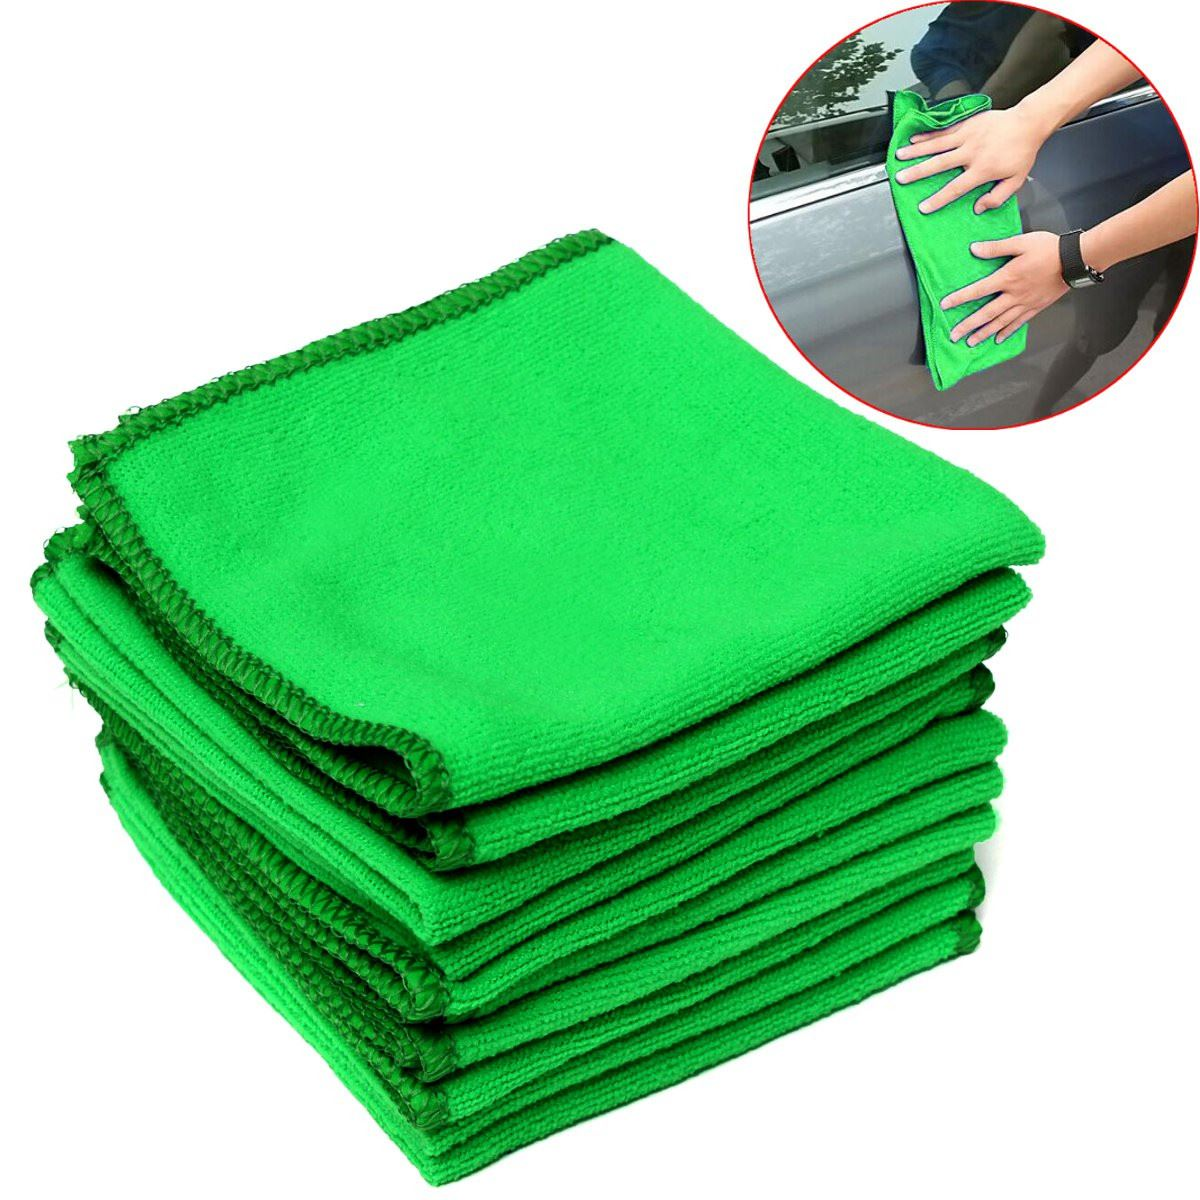 10Pcs Green Microfiber Cleaning Car Auto Detailing Cloth Towel Duster Wash 29cm